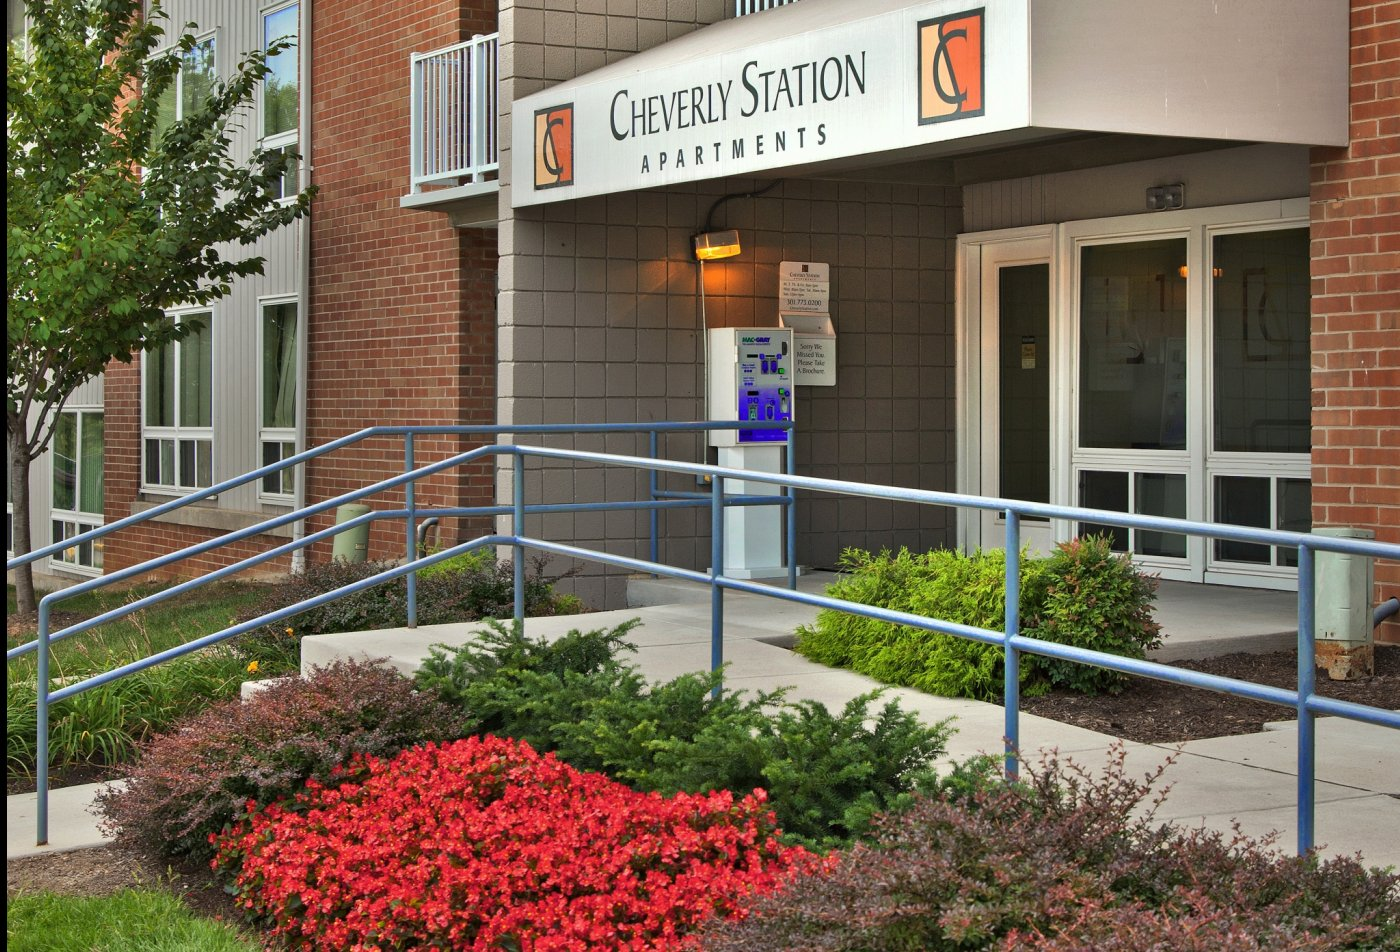 Entrance | Cheverly Station Apartments